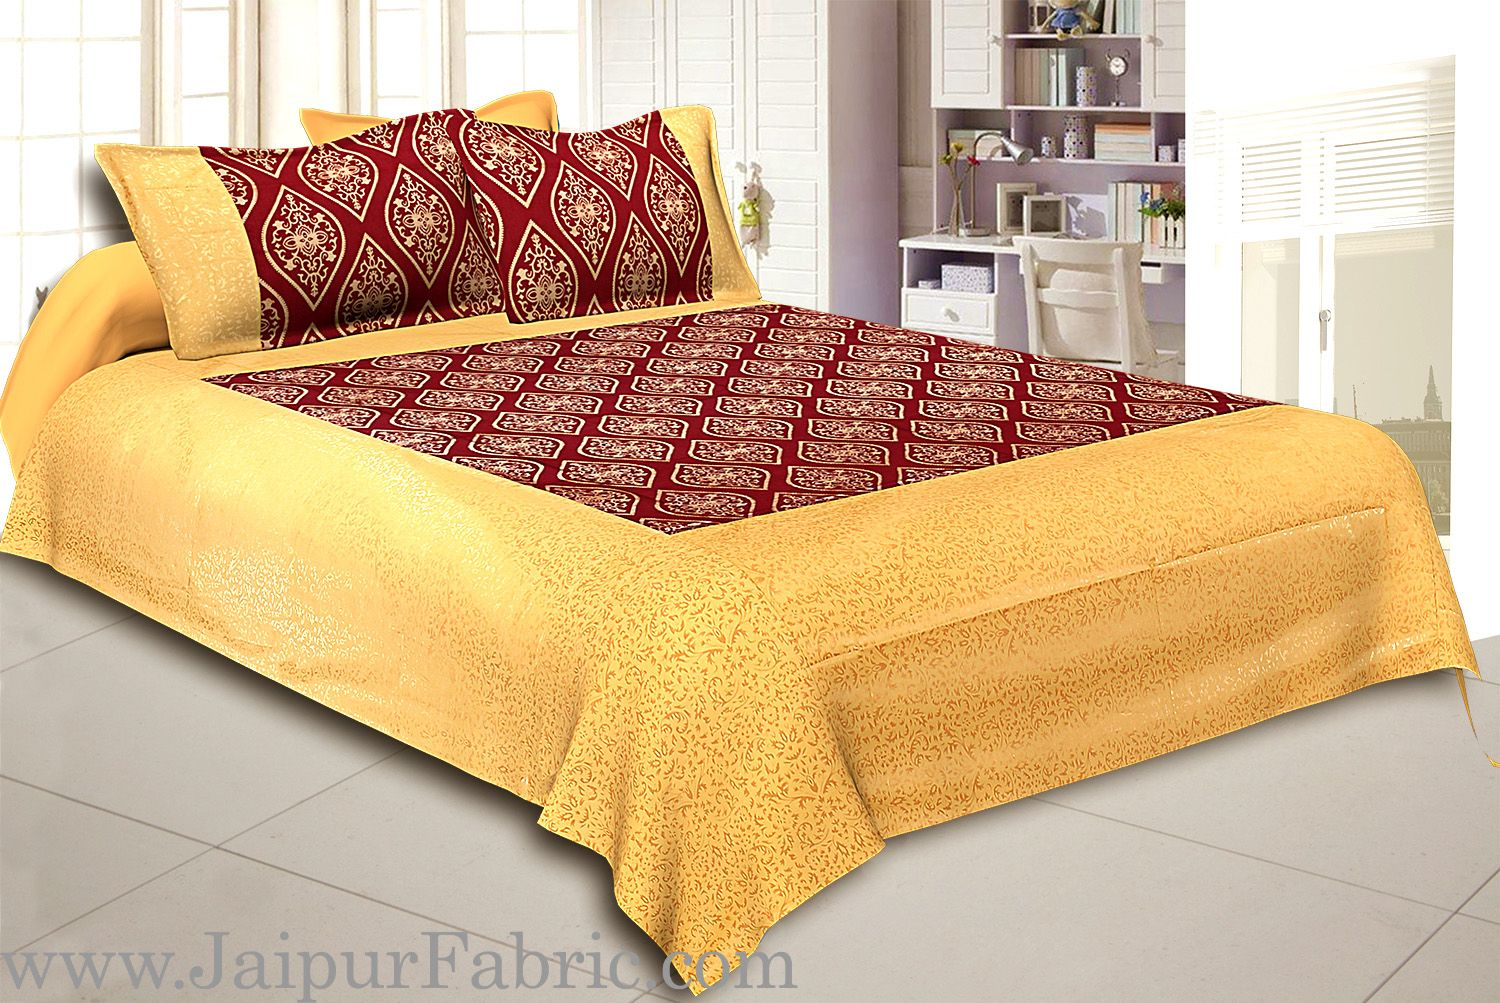 Cream Broad Border With Shining Gold Print Maroon Base Gold Retro Pattern Super Fine Cotton  Double Bed Sheet